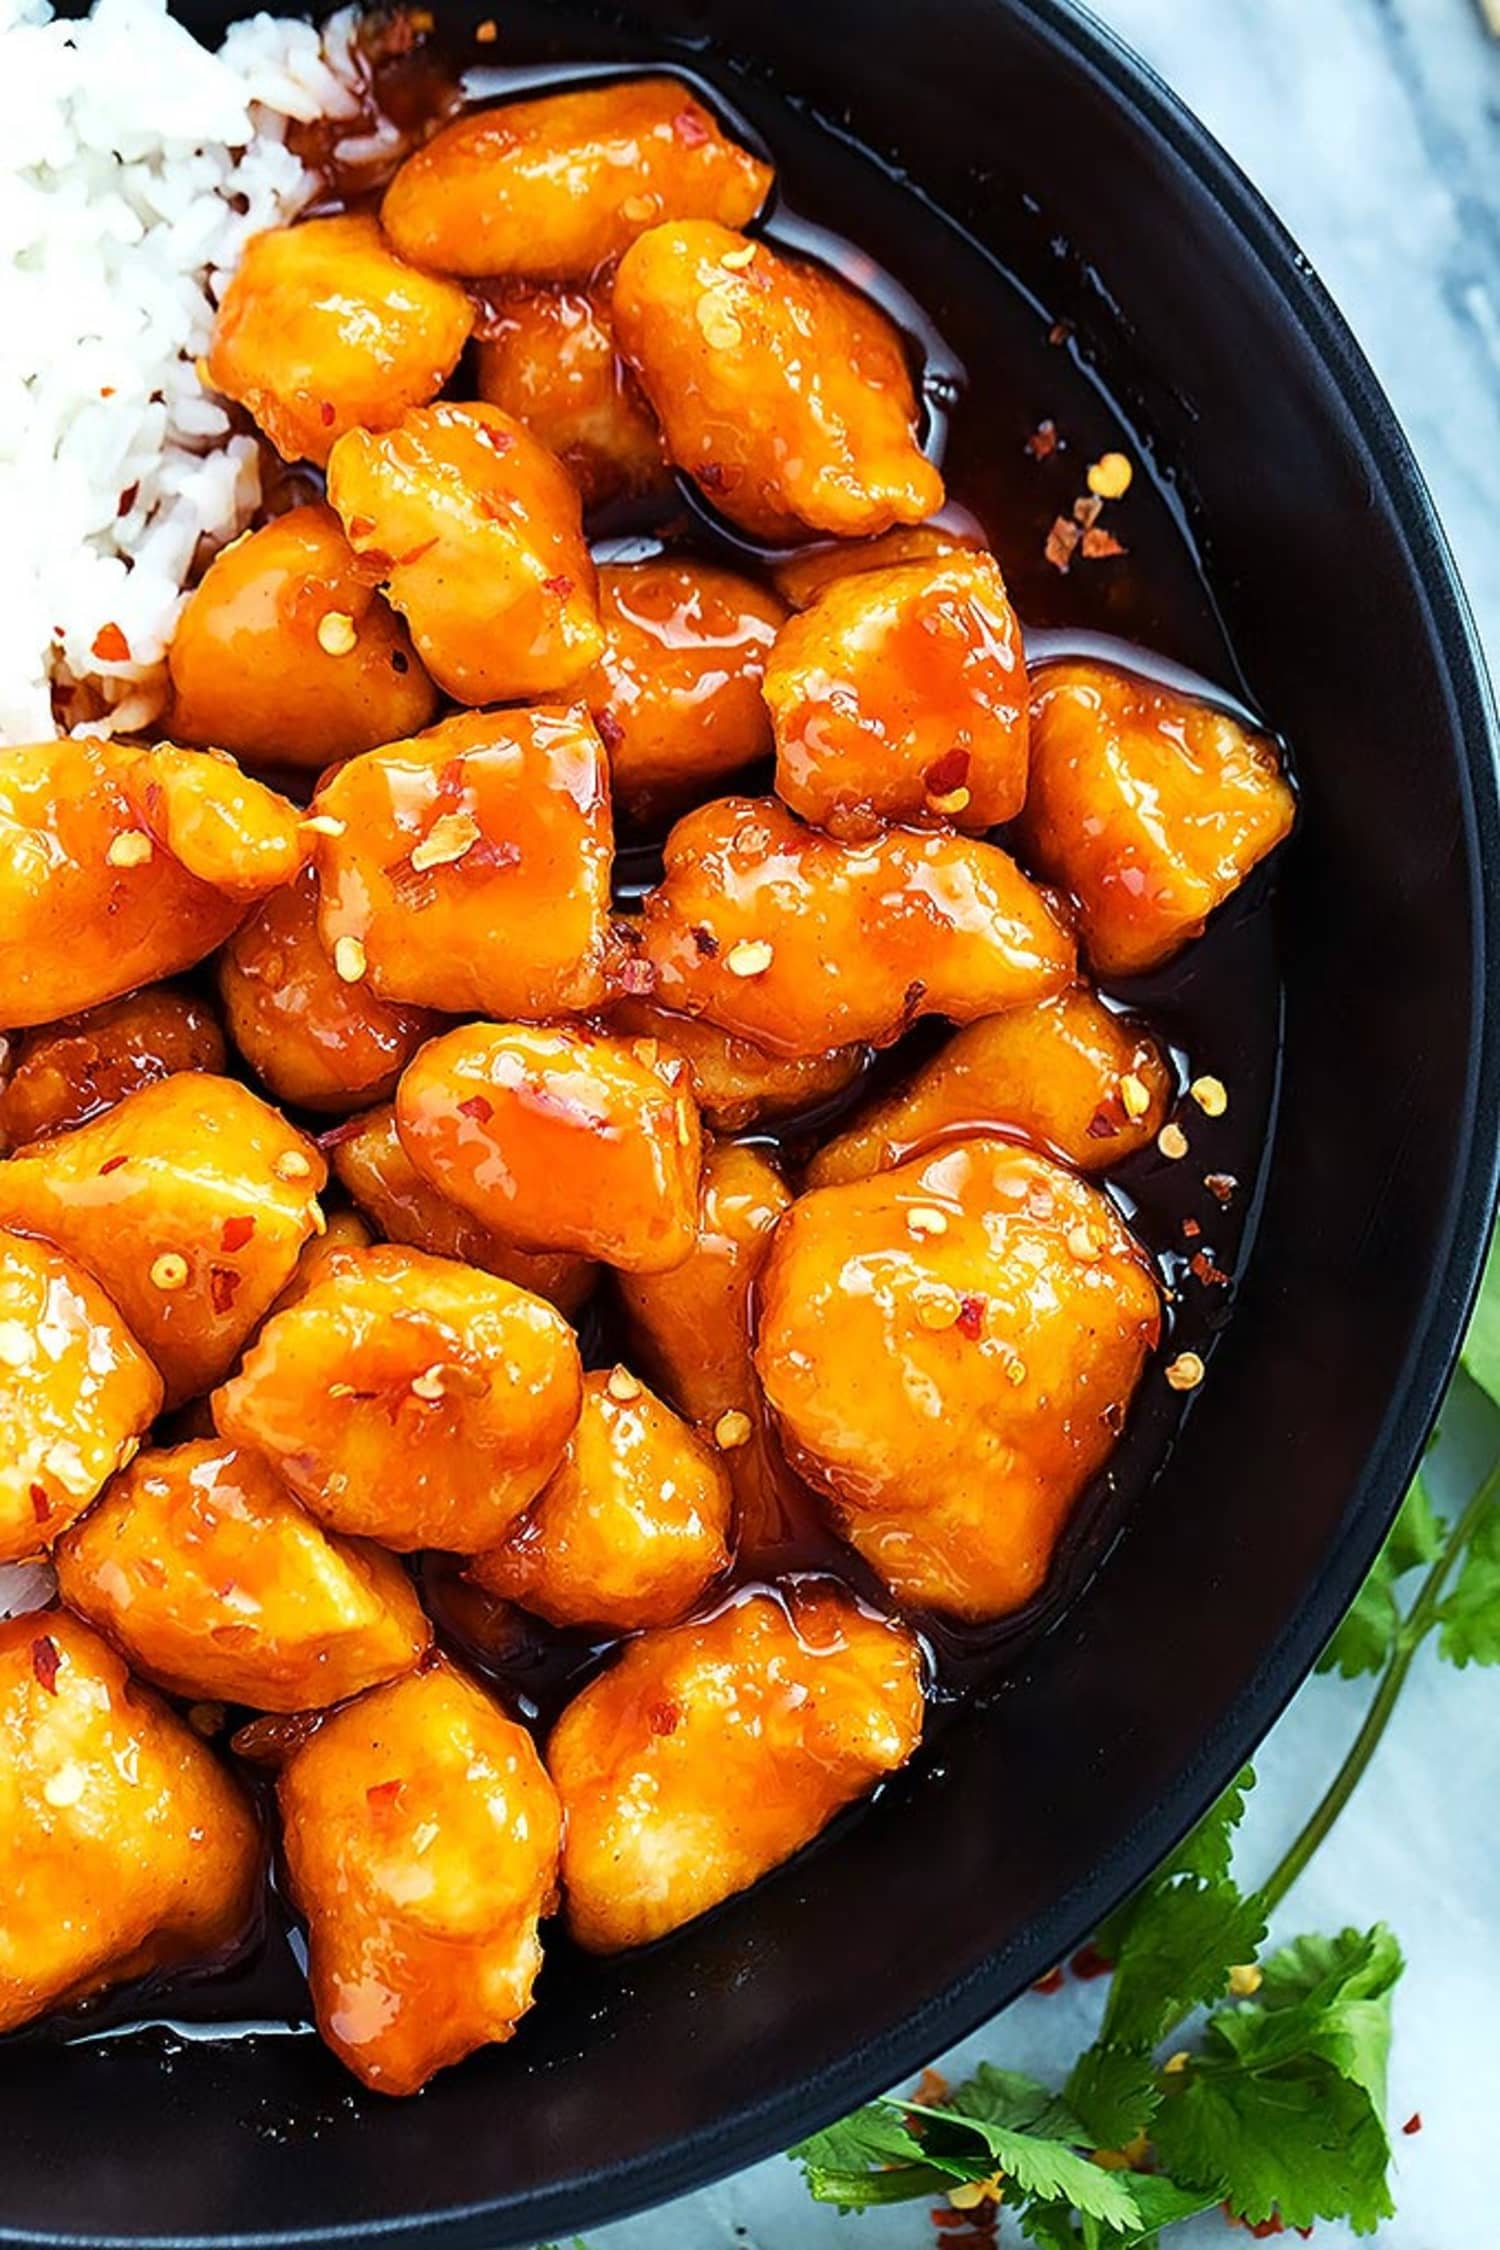 Make This Firecracker Chicken in Your Slow Cooker